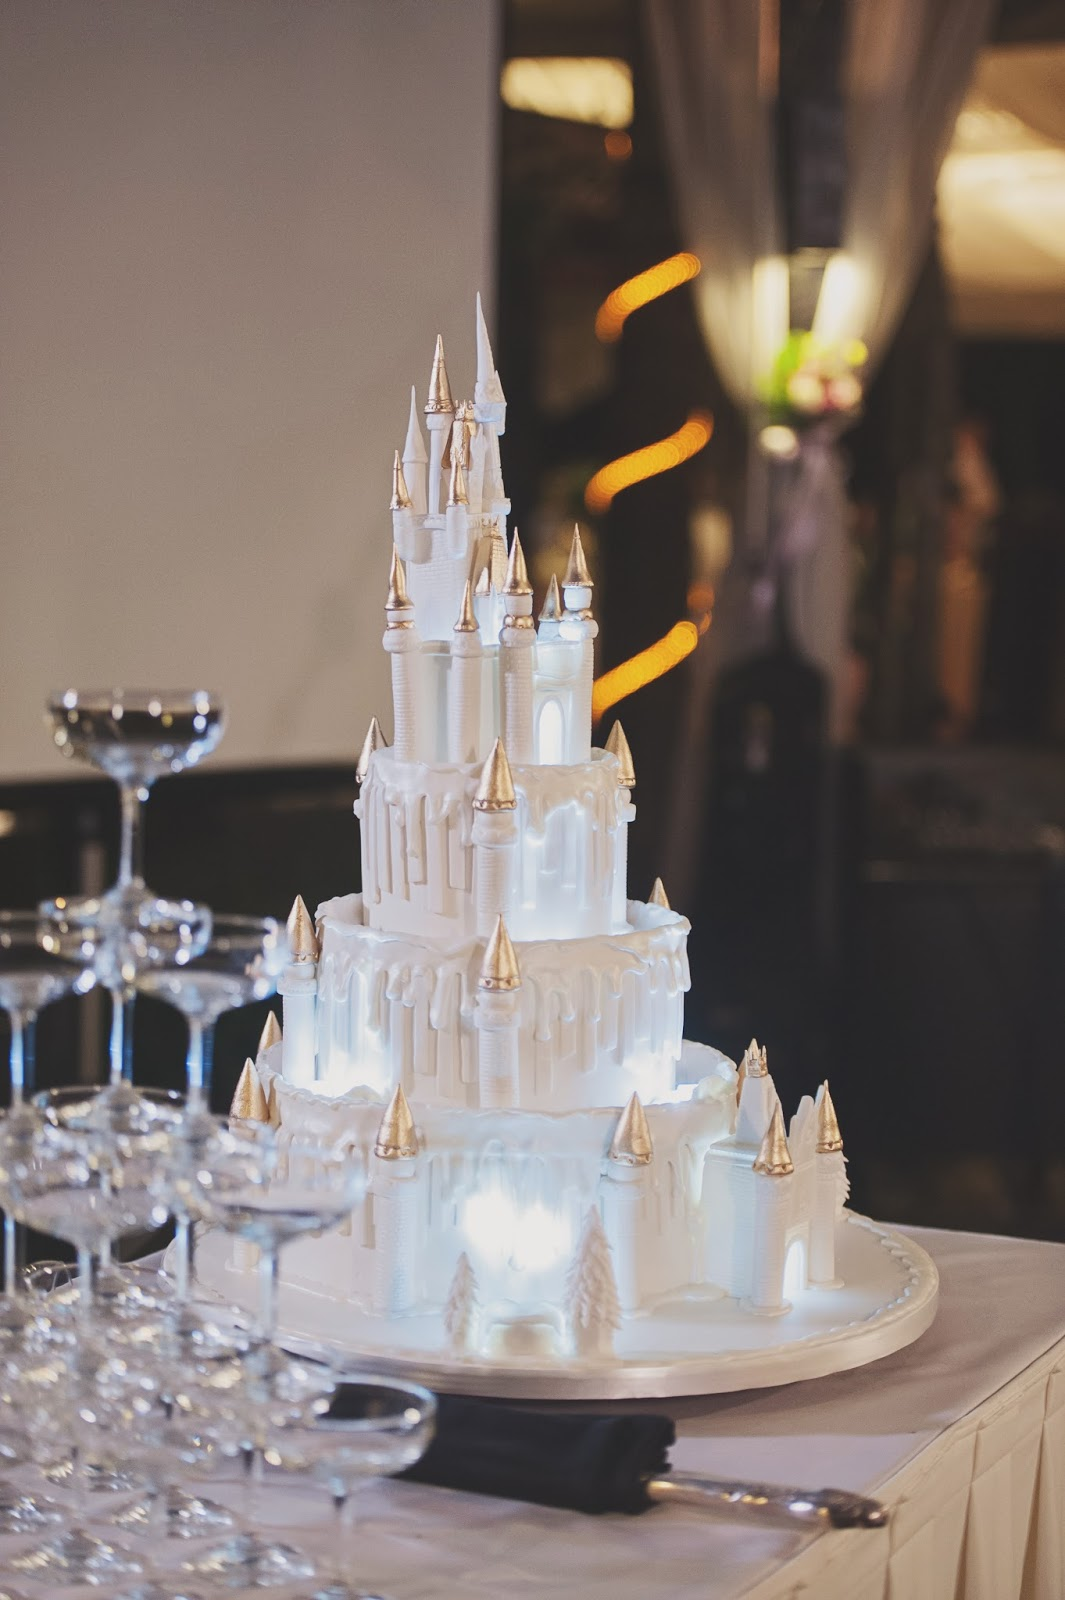 DisneyThemed Cakes Will Bring Some Magic To Your Wedding  WeddingElation